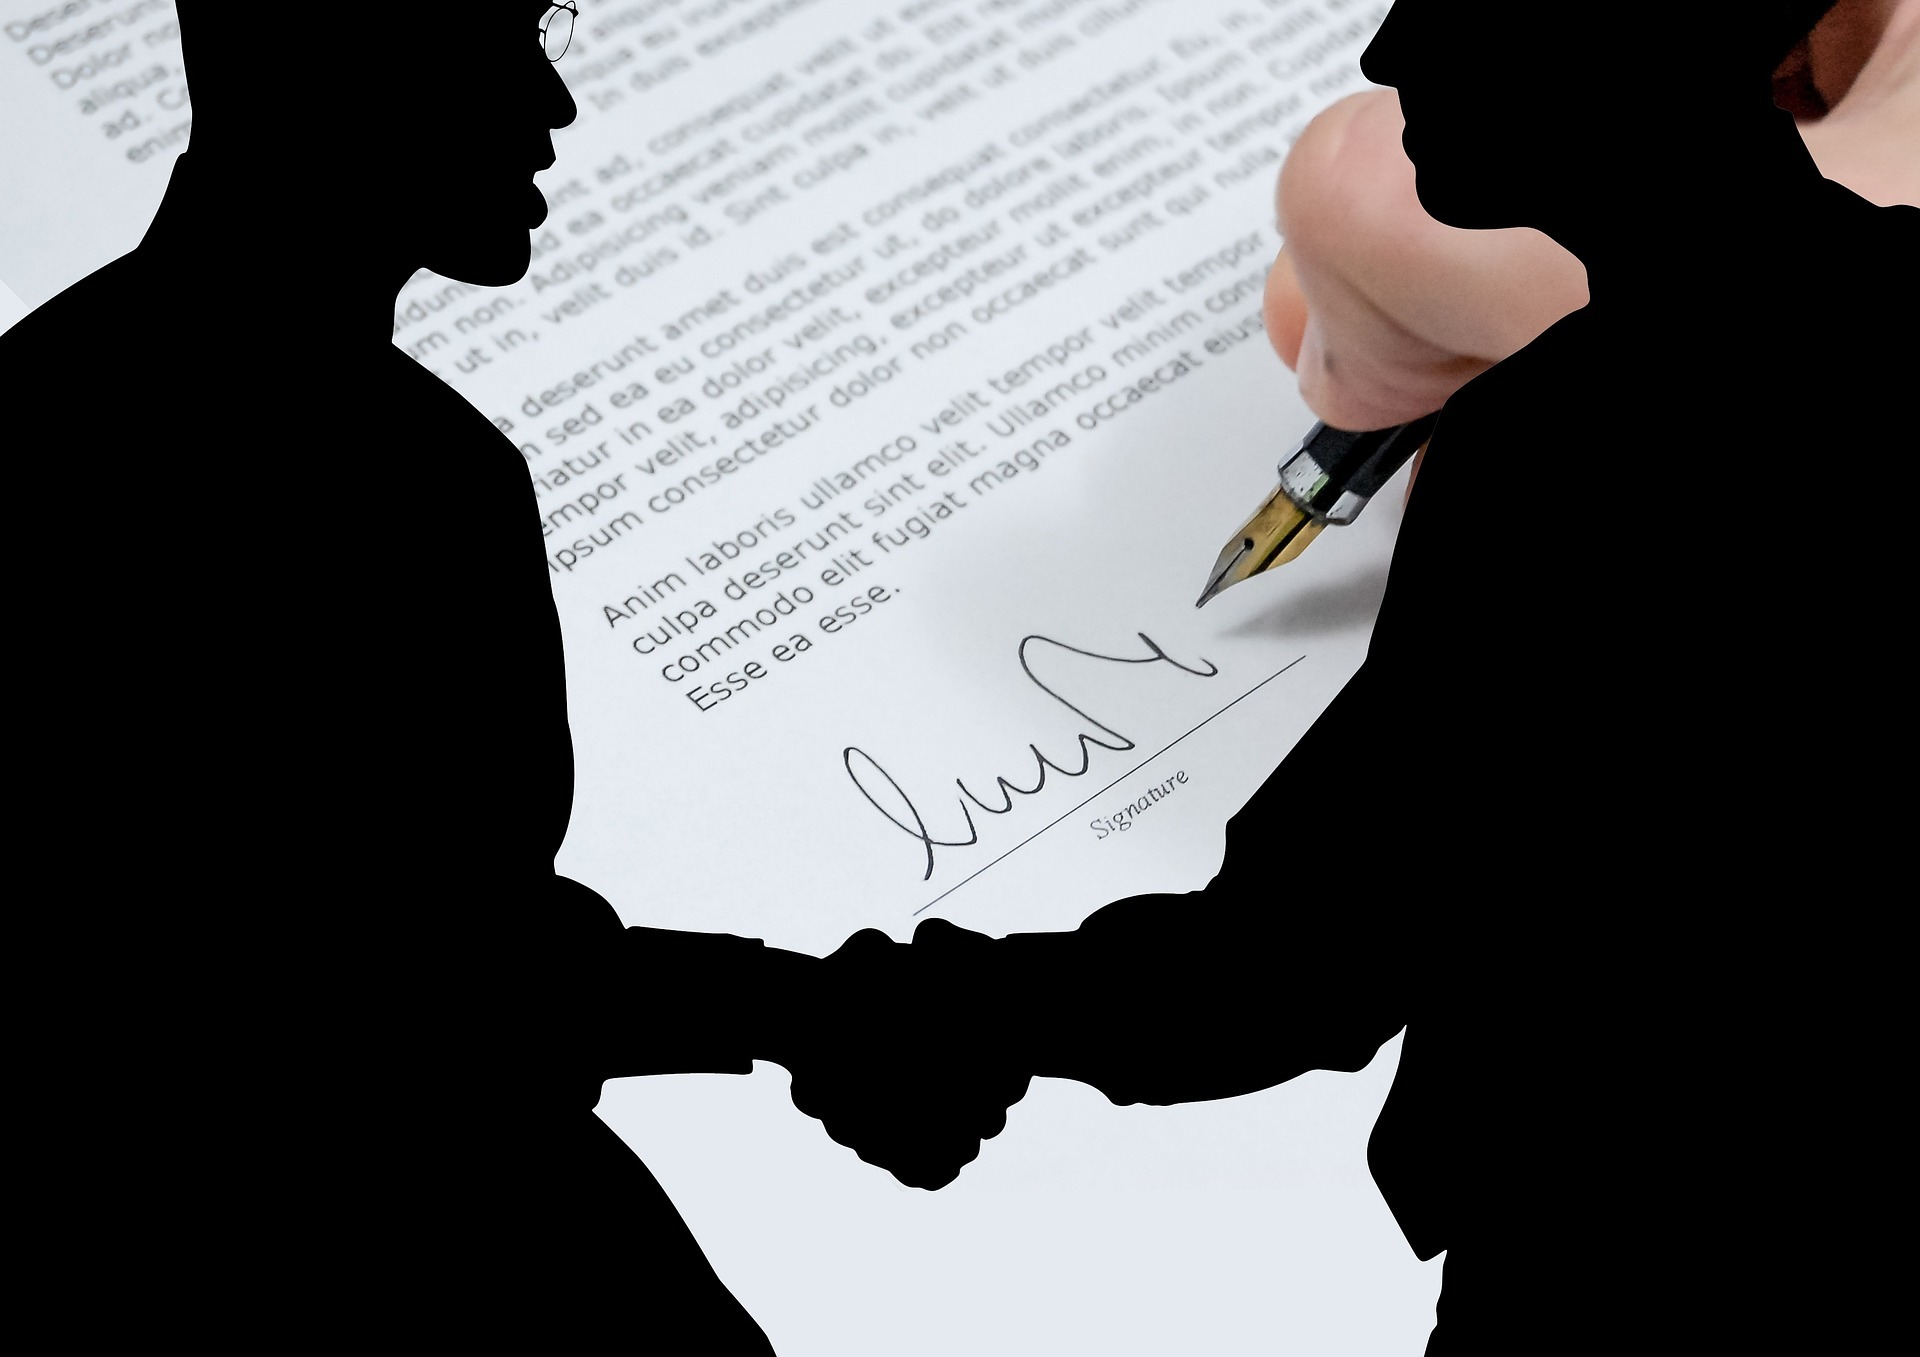 Two shadow figures shaking hands in front of a signed document